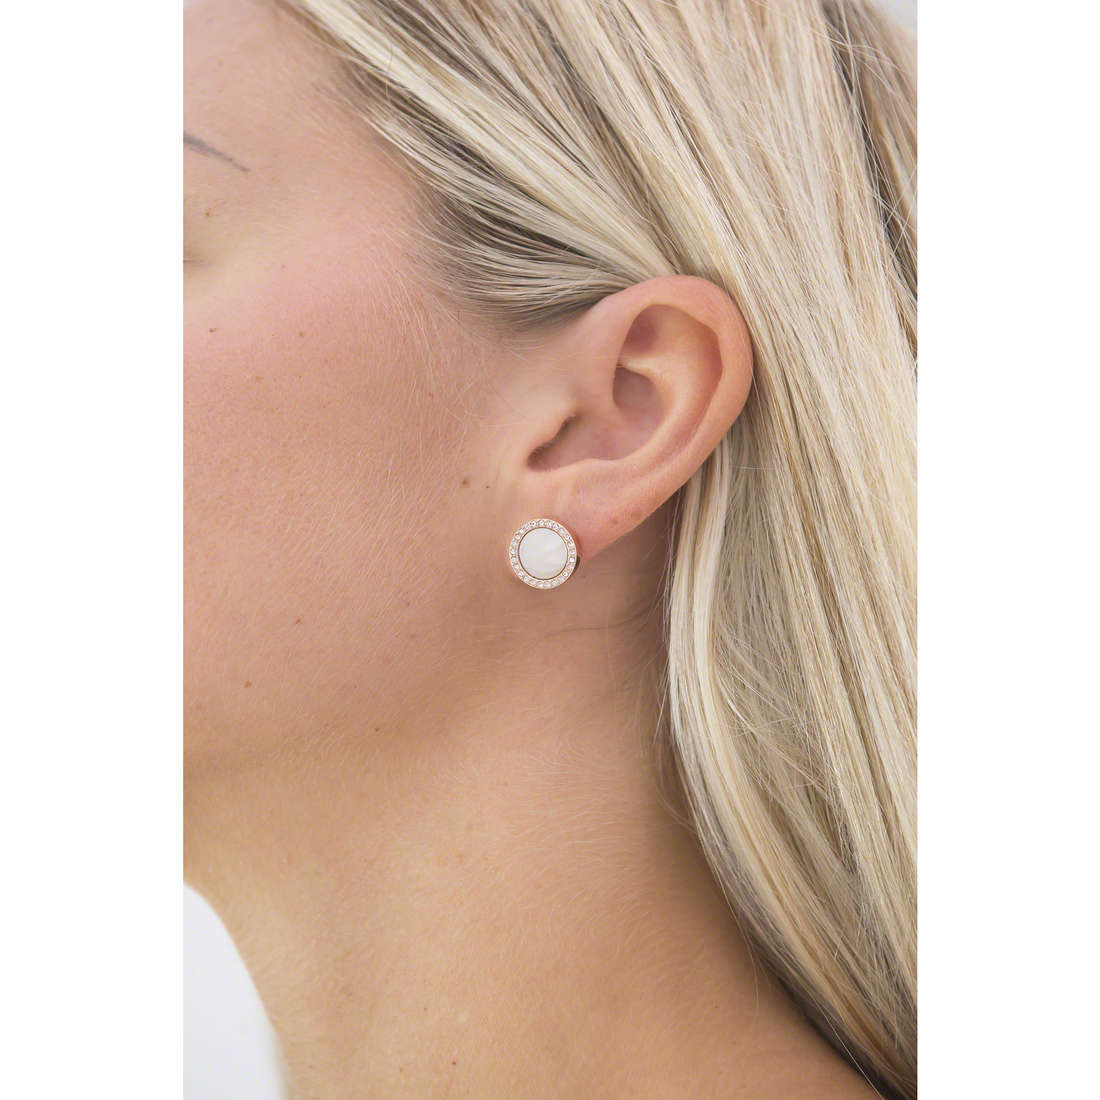 Fossil boucles d'oreille Summer 15 femme JF01715791 indosso